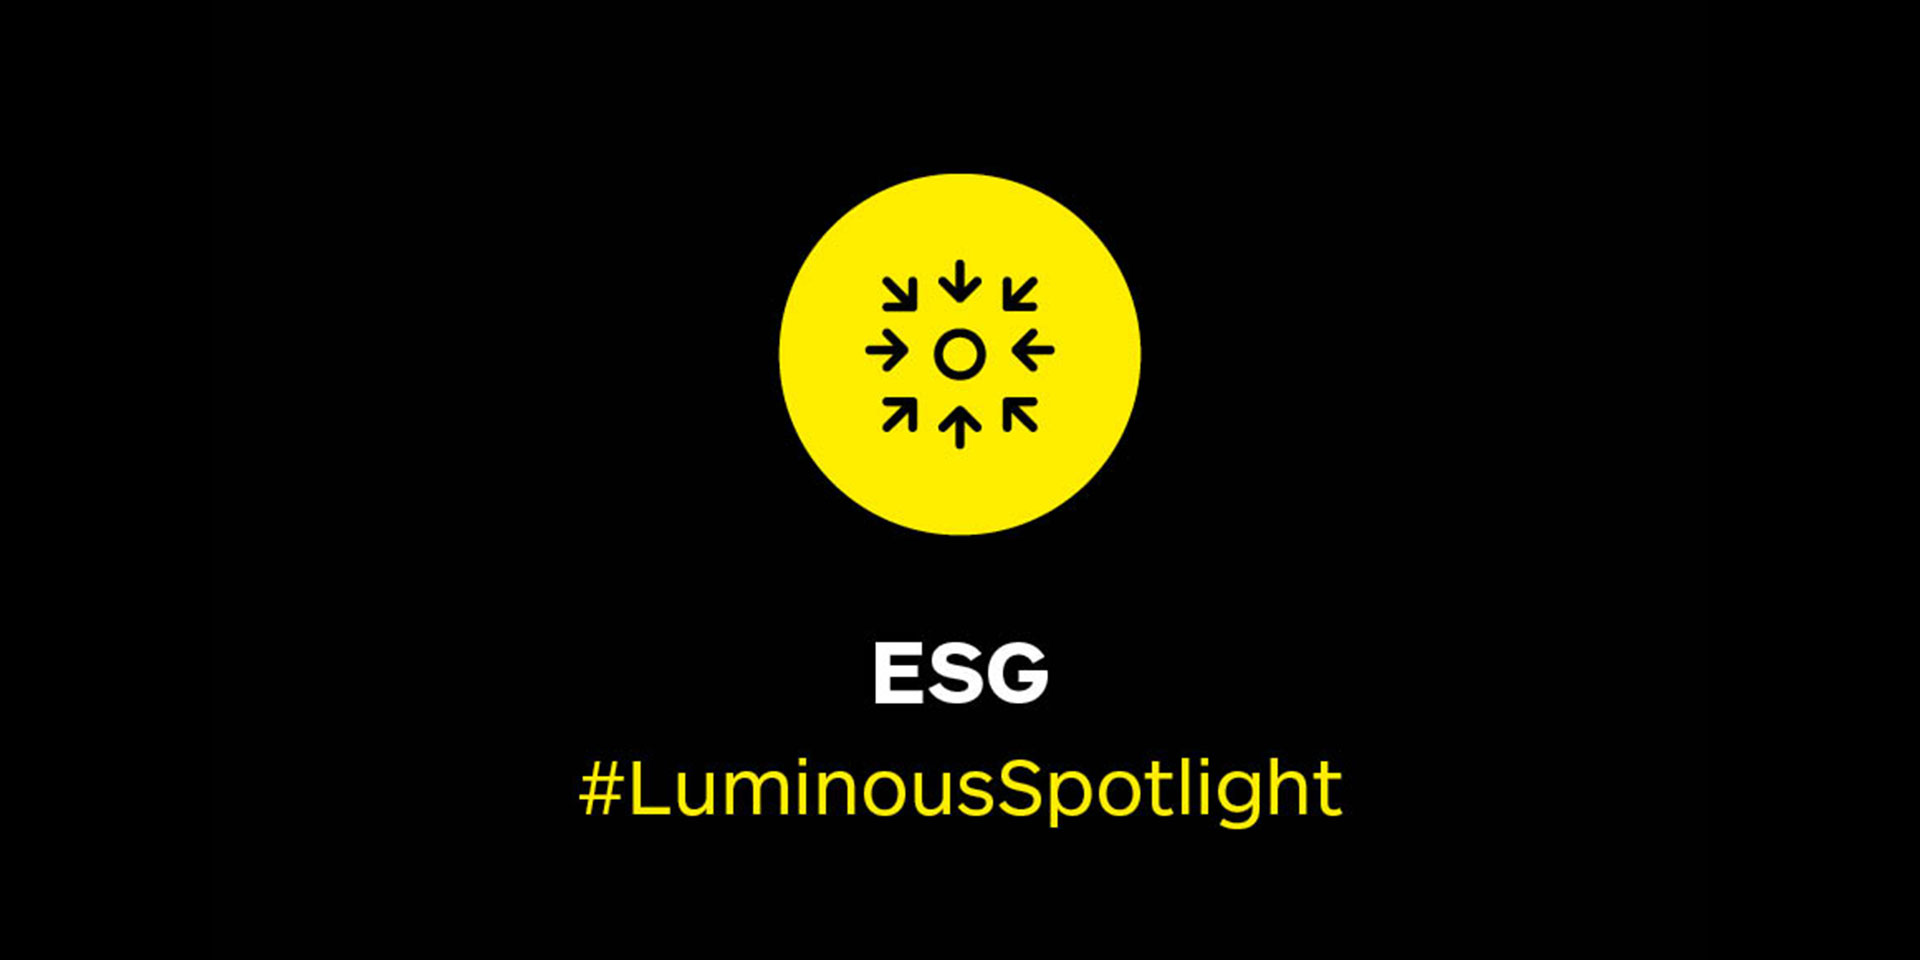 Spotlight on environmental, social and governance (ESG) investments and investing